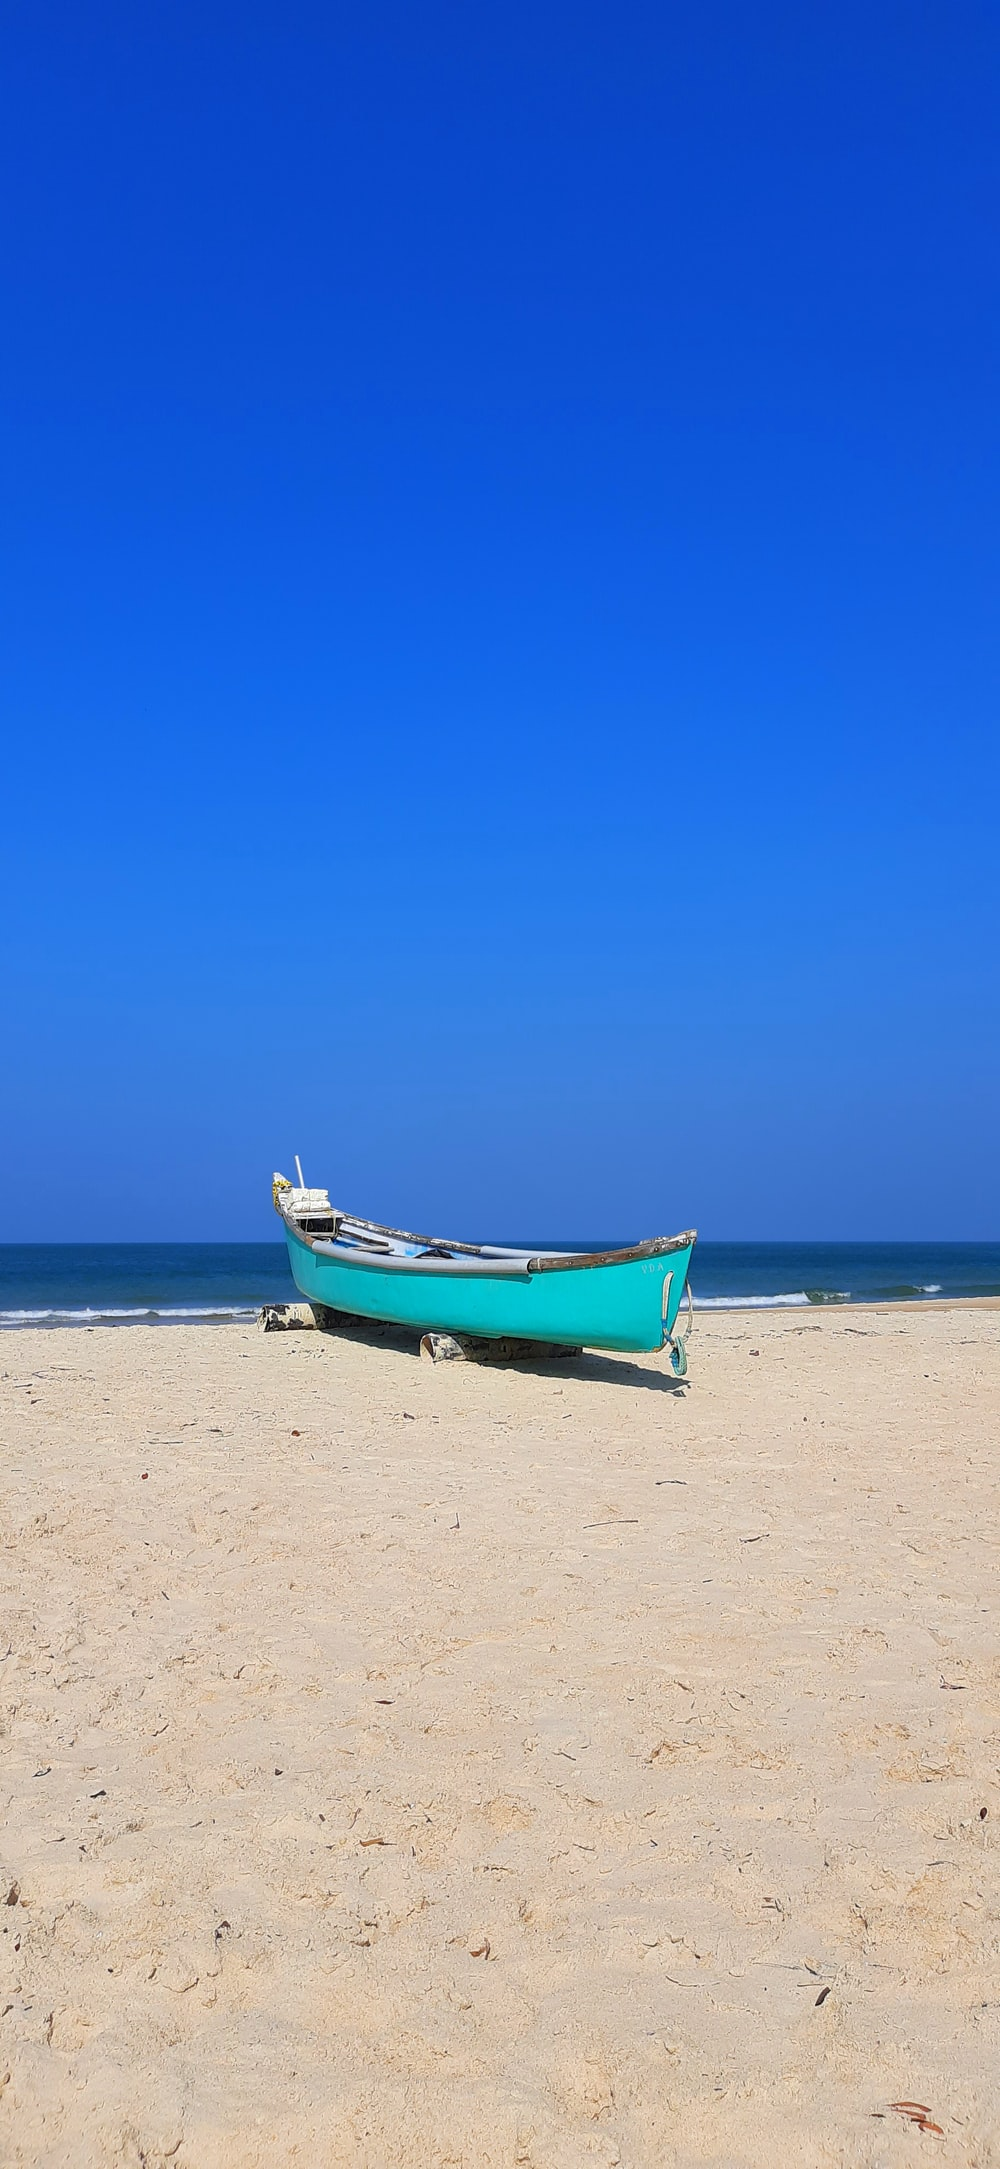 blue and white boat on beach during daytime